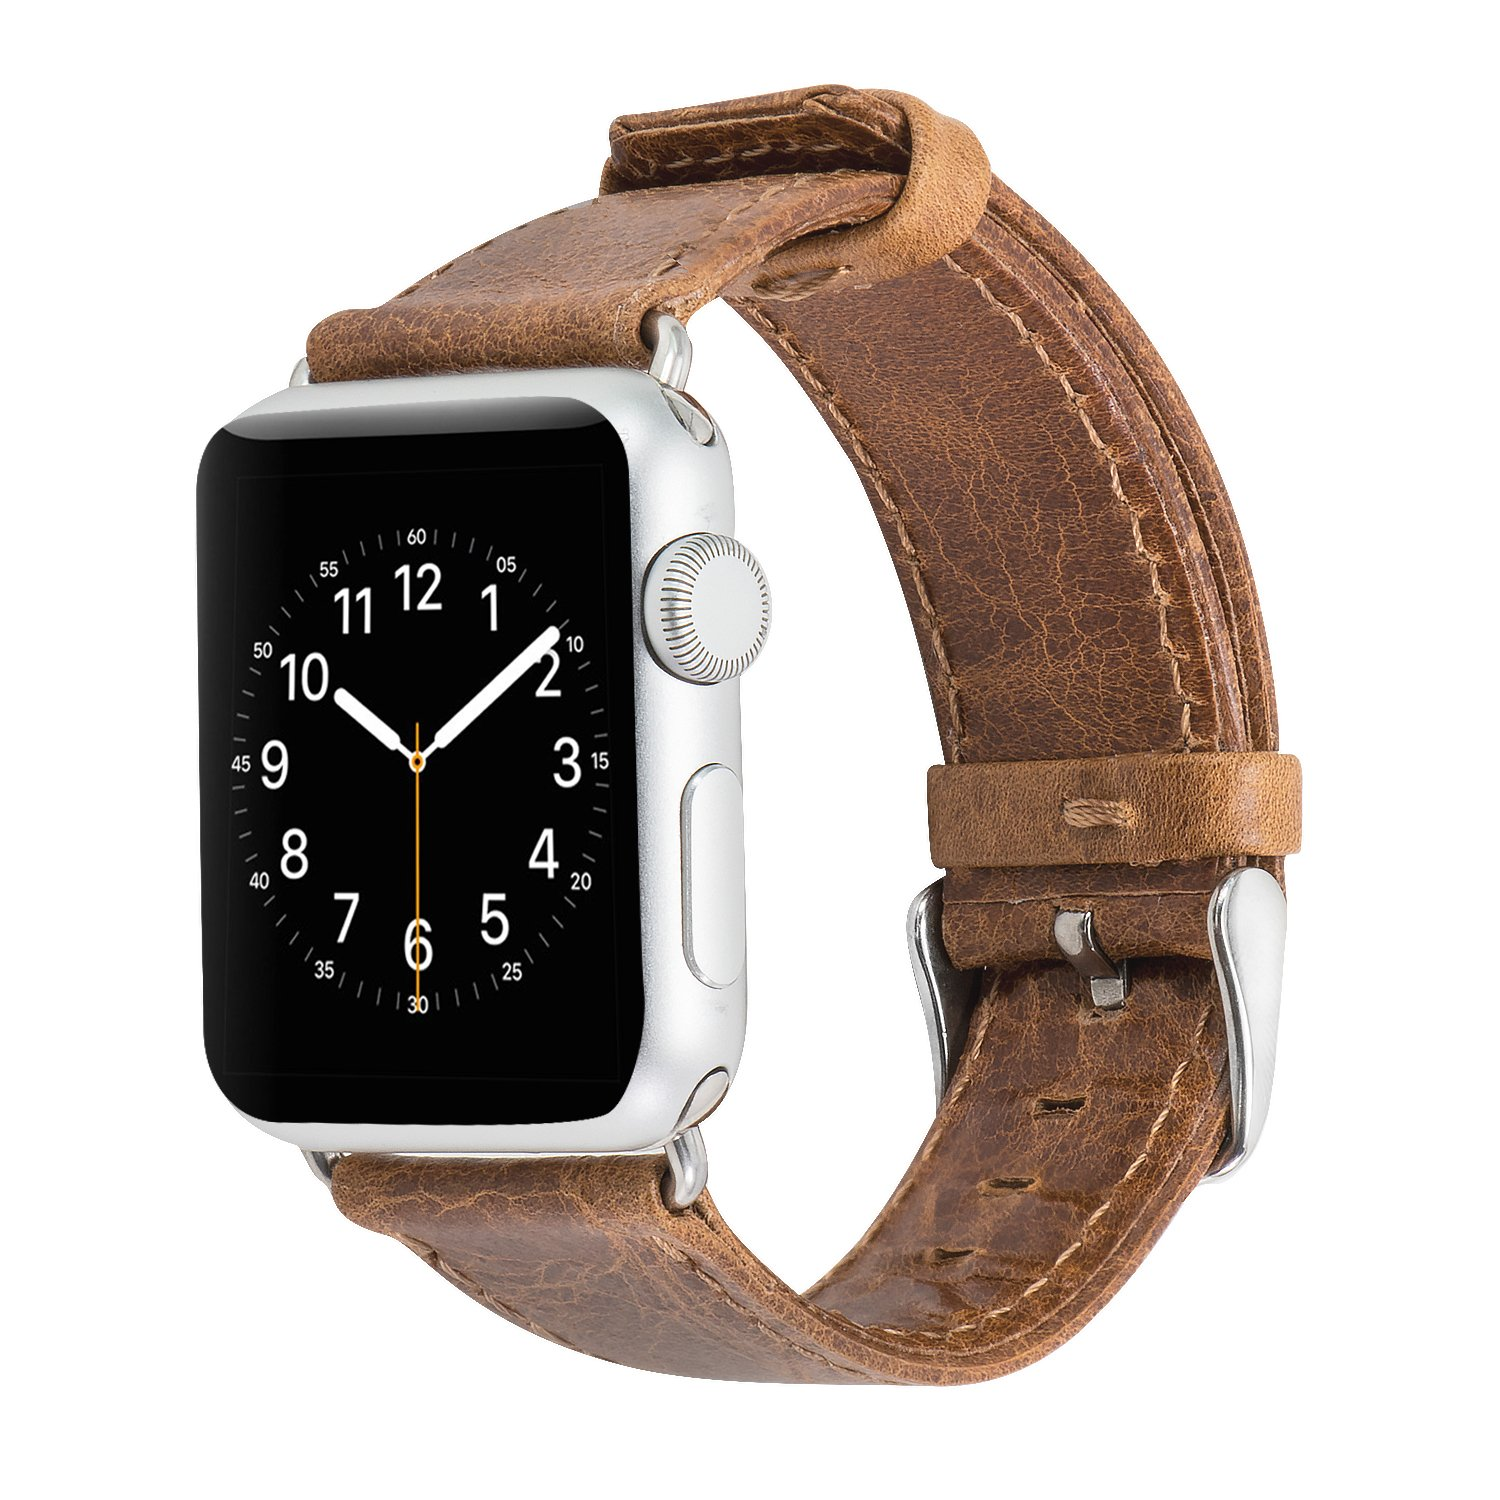 Apple Watch Band 38mm Light Brown, SUNKONG Brief Style Crazy Horse Luxury Leather Apple Watch Strap Replacement for 42mm Apple Watch Series 3 Series 2 Series 5